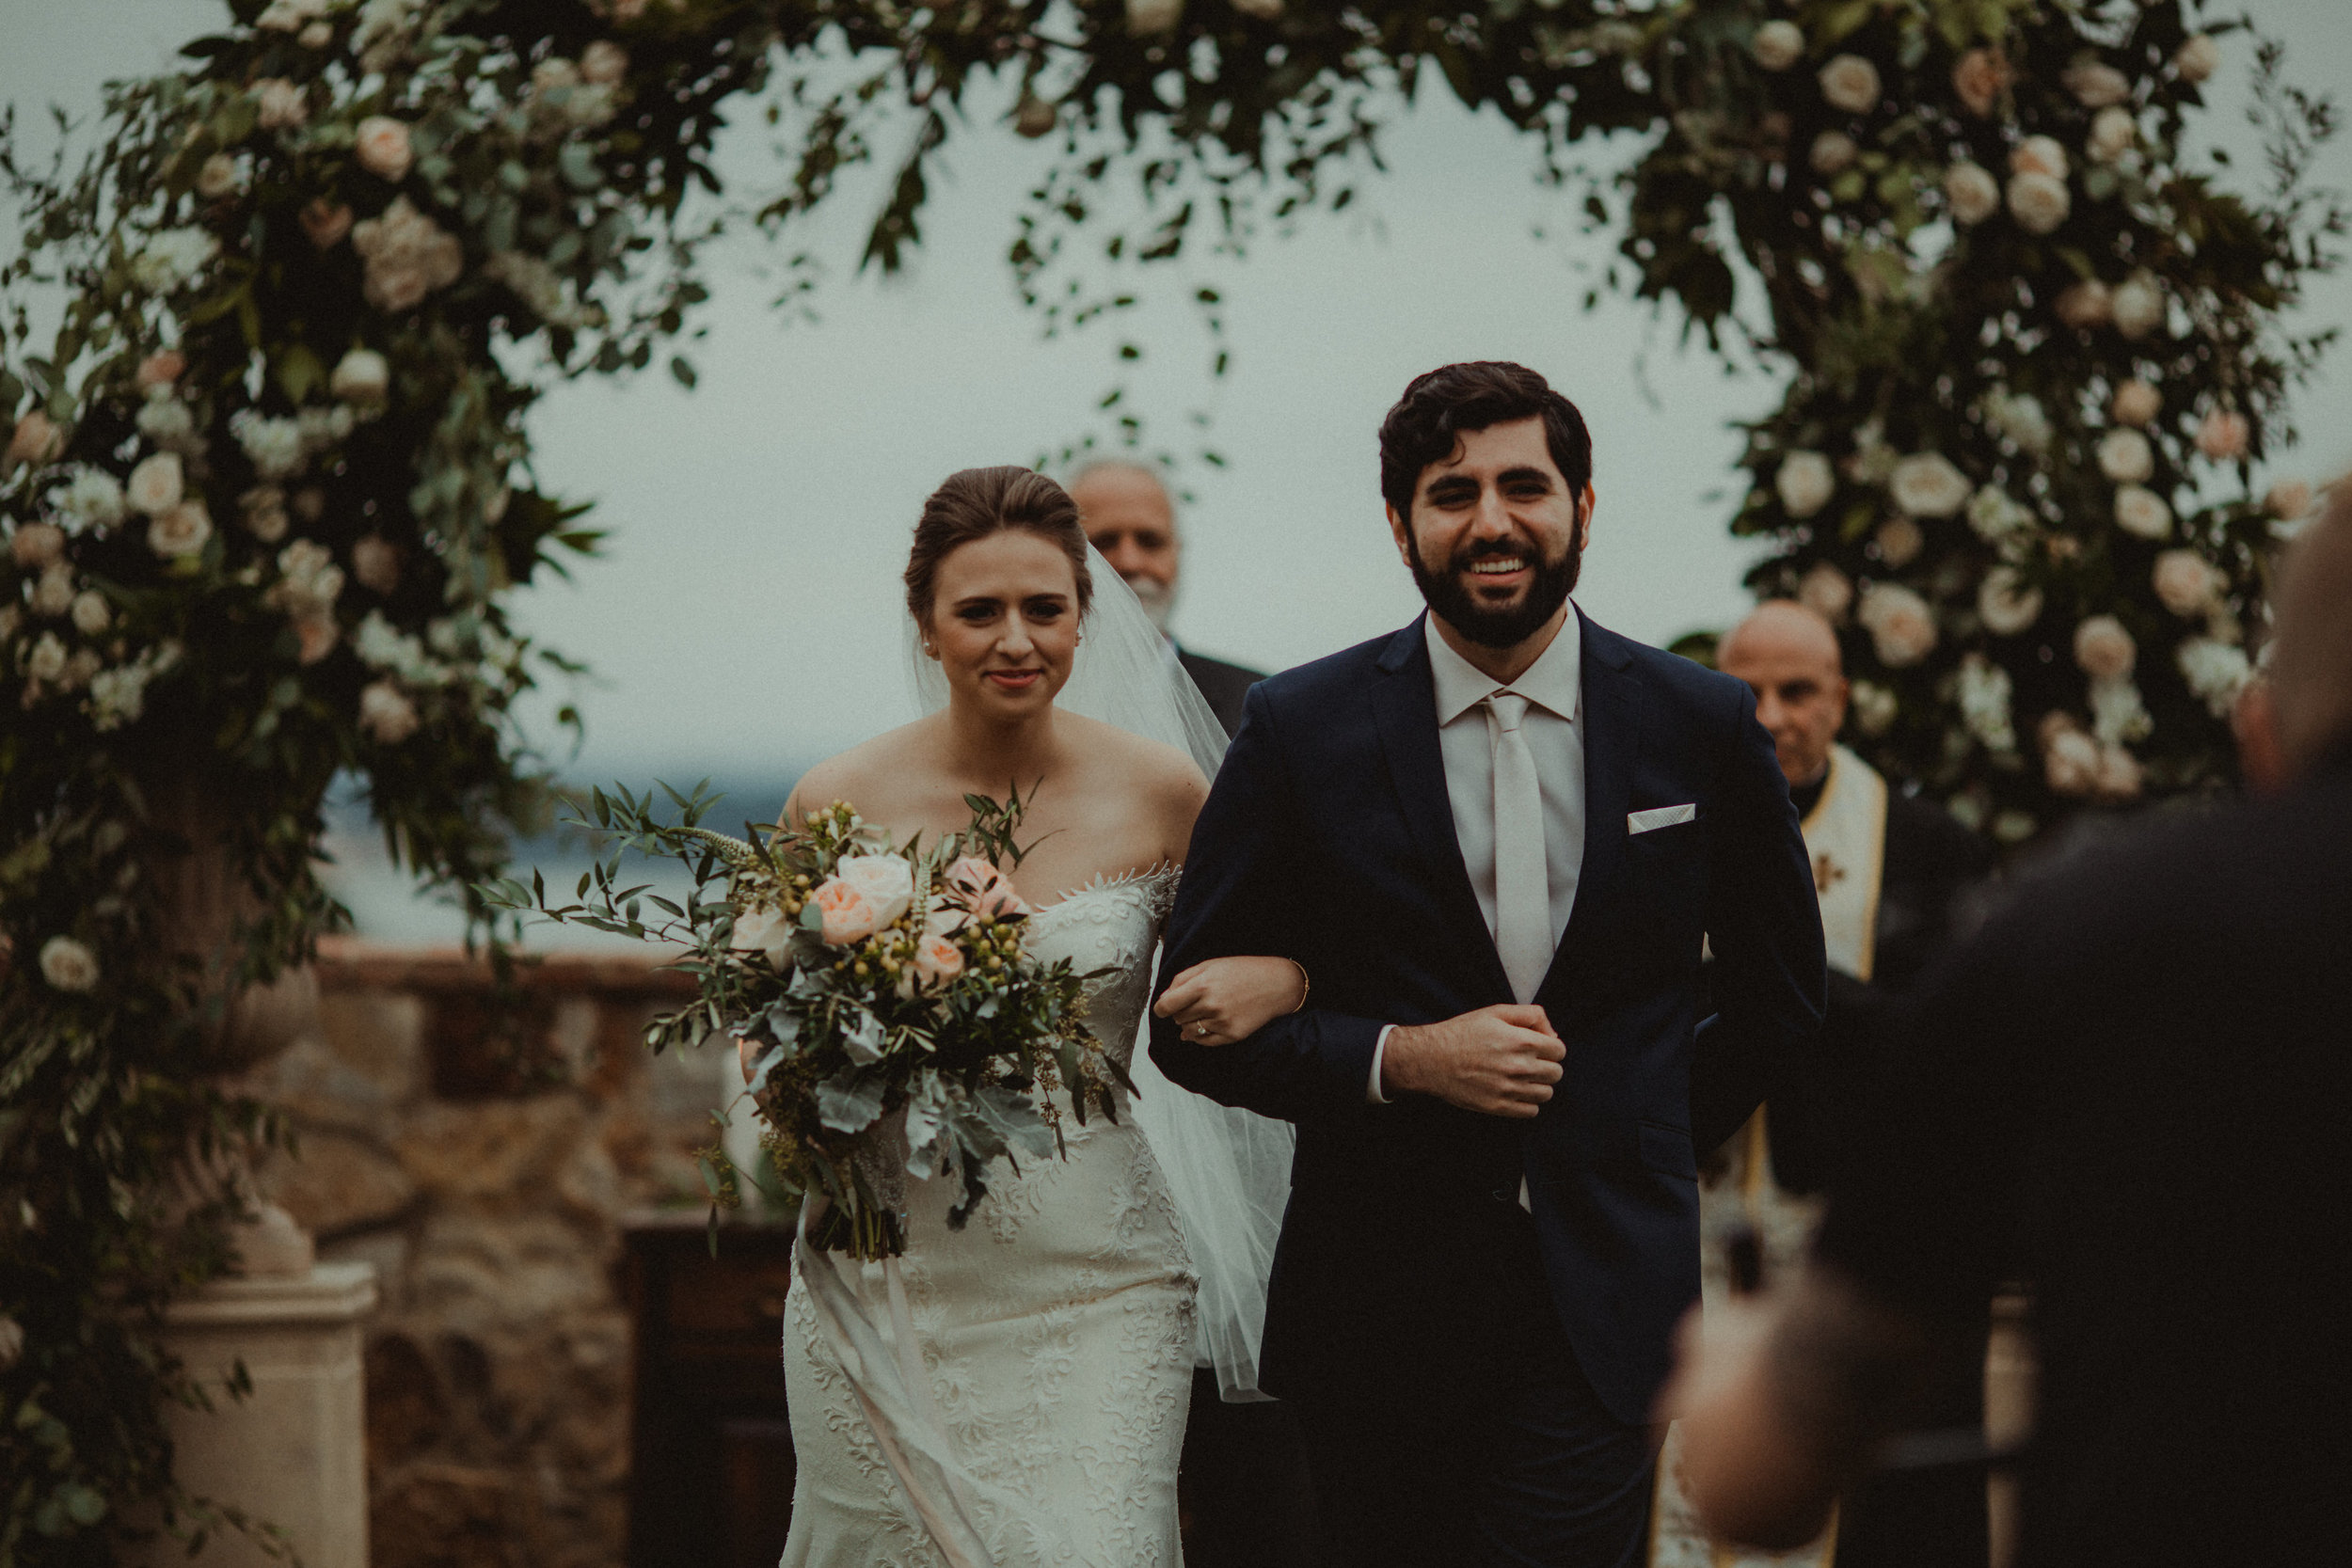 Happily married at Bella Collina